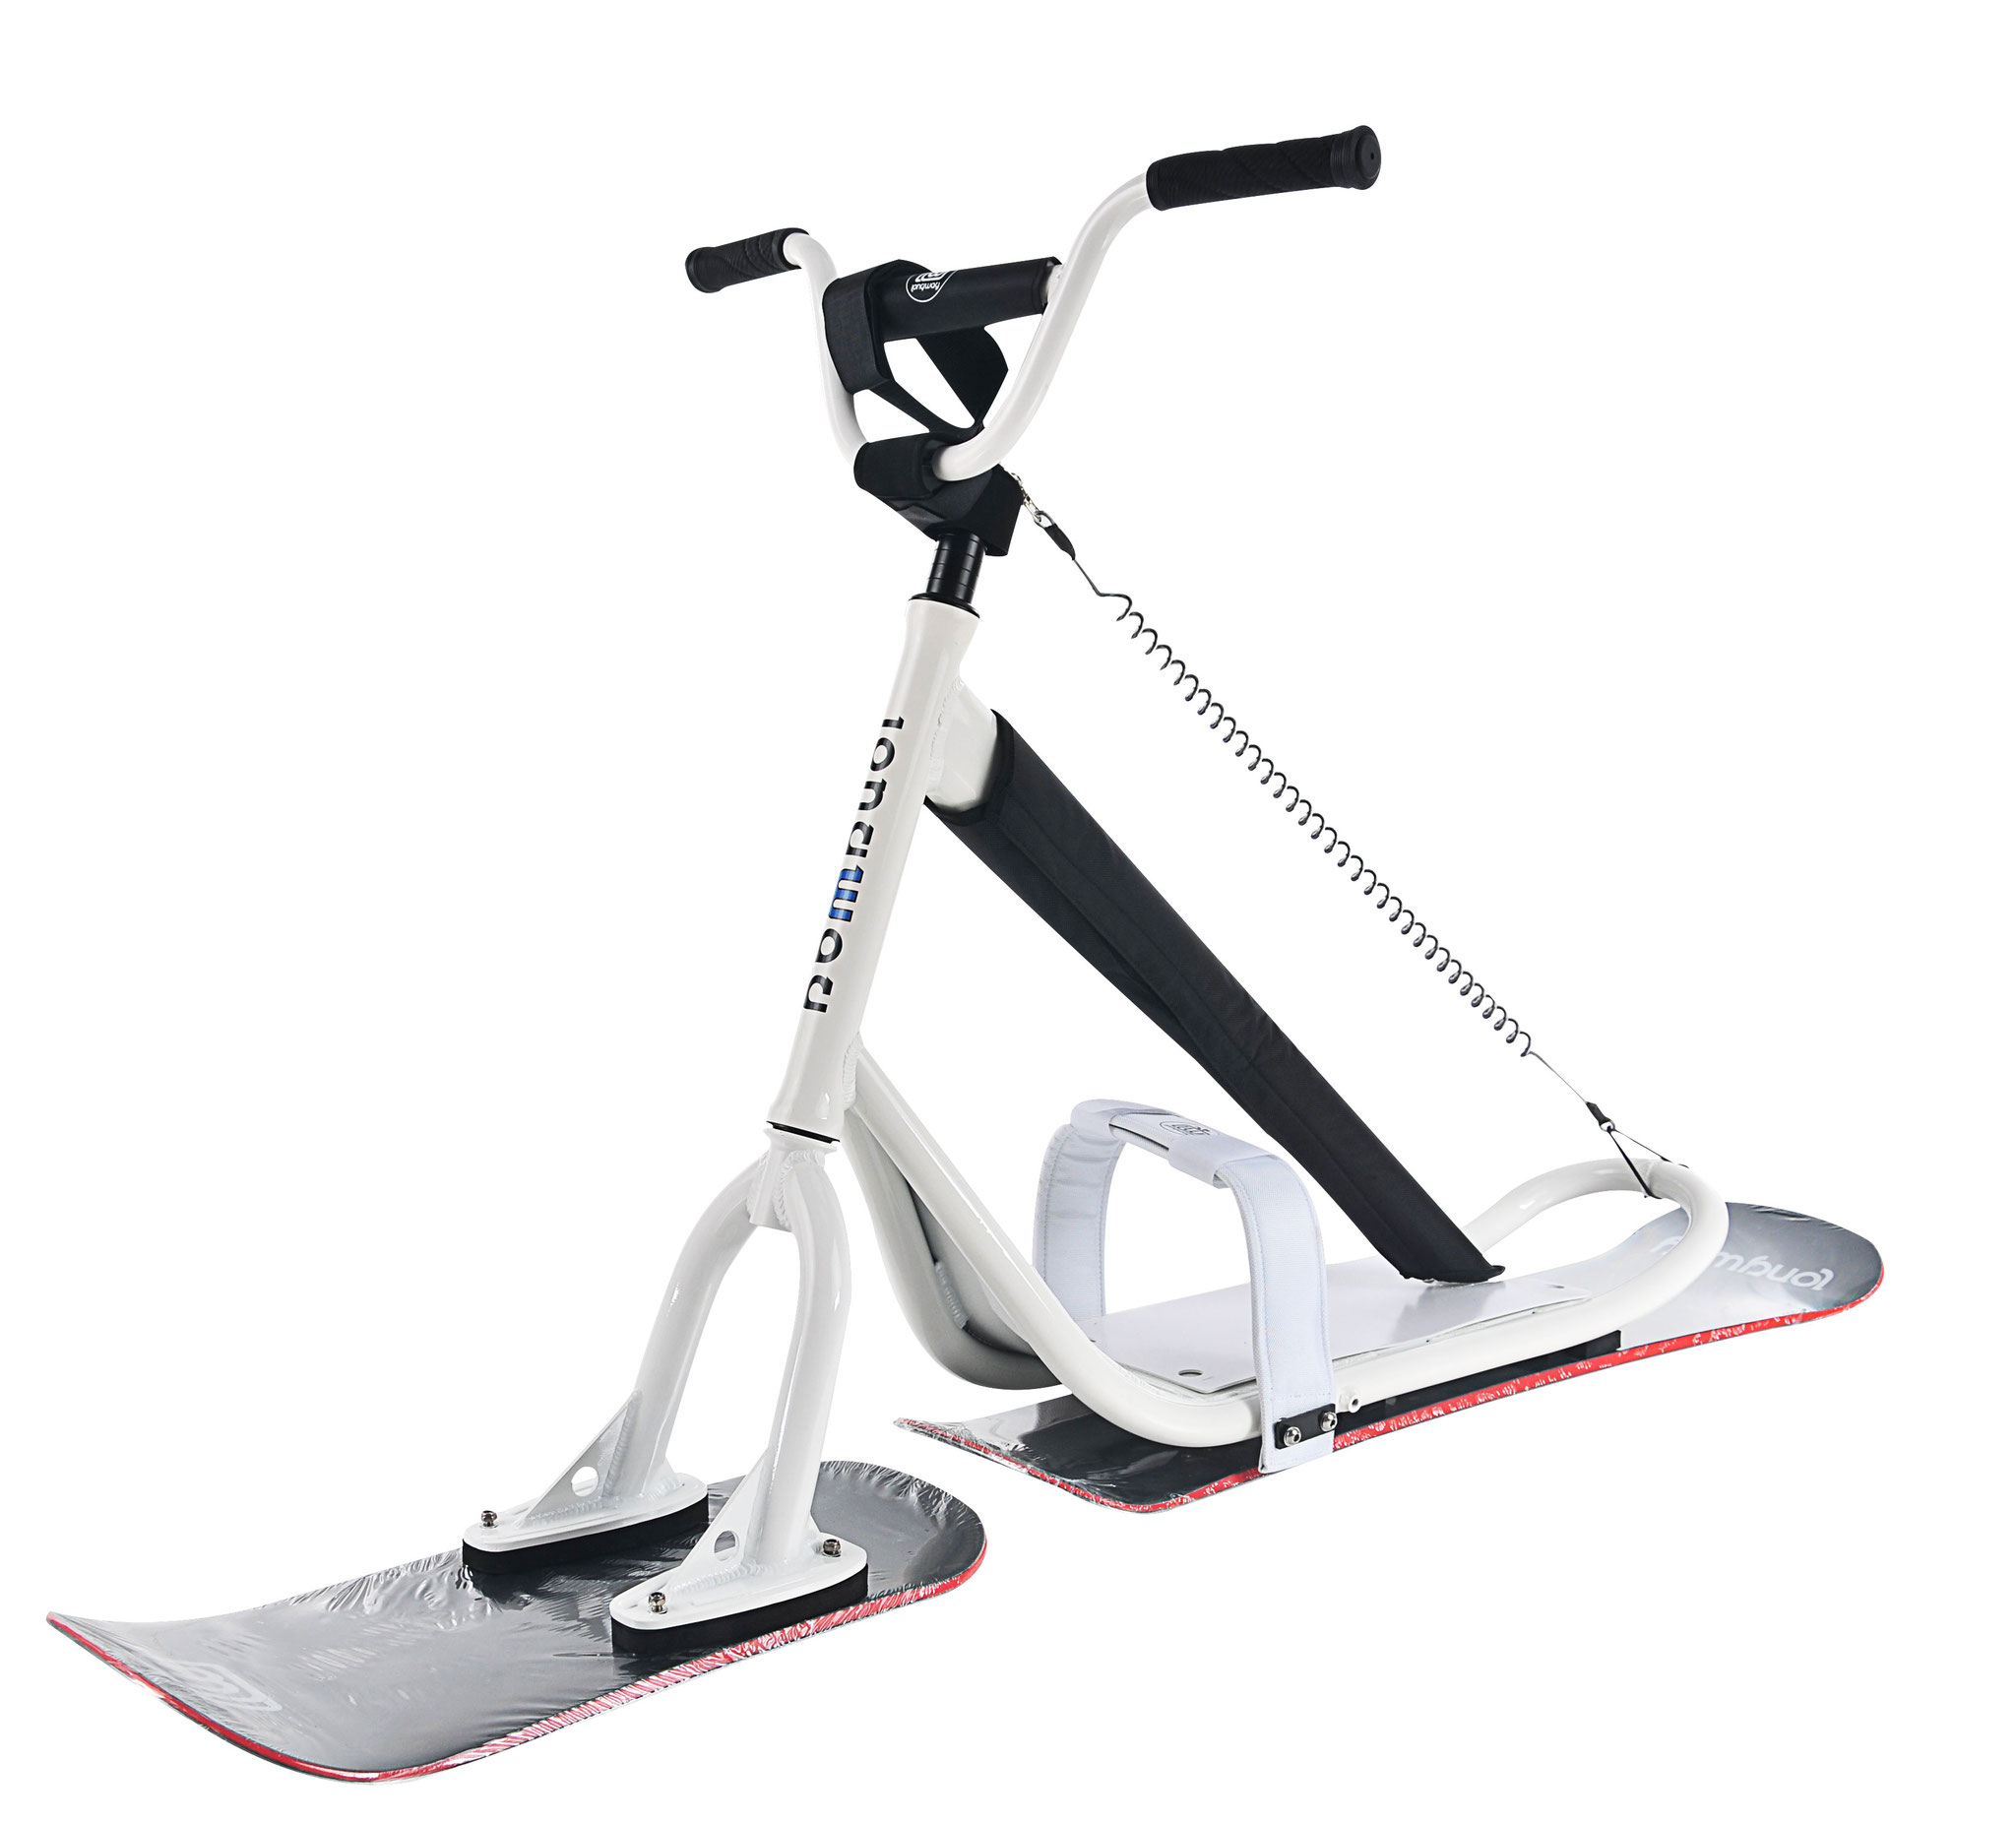 Longway Sports Snowscoot Suilbikes white 1